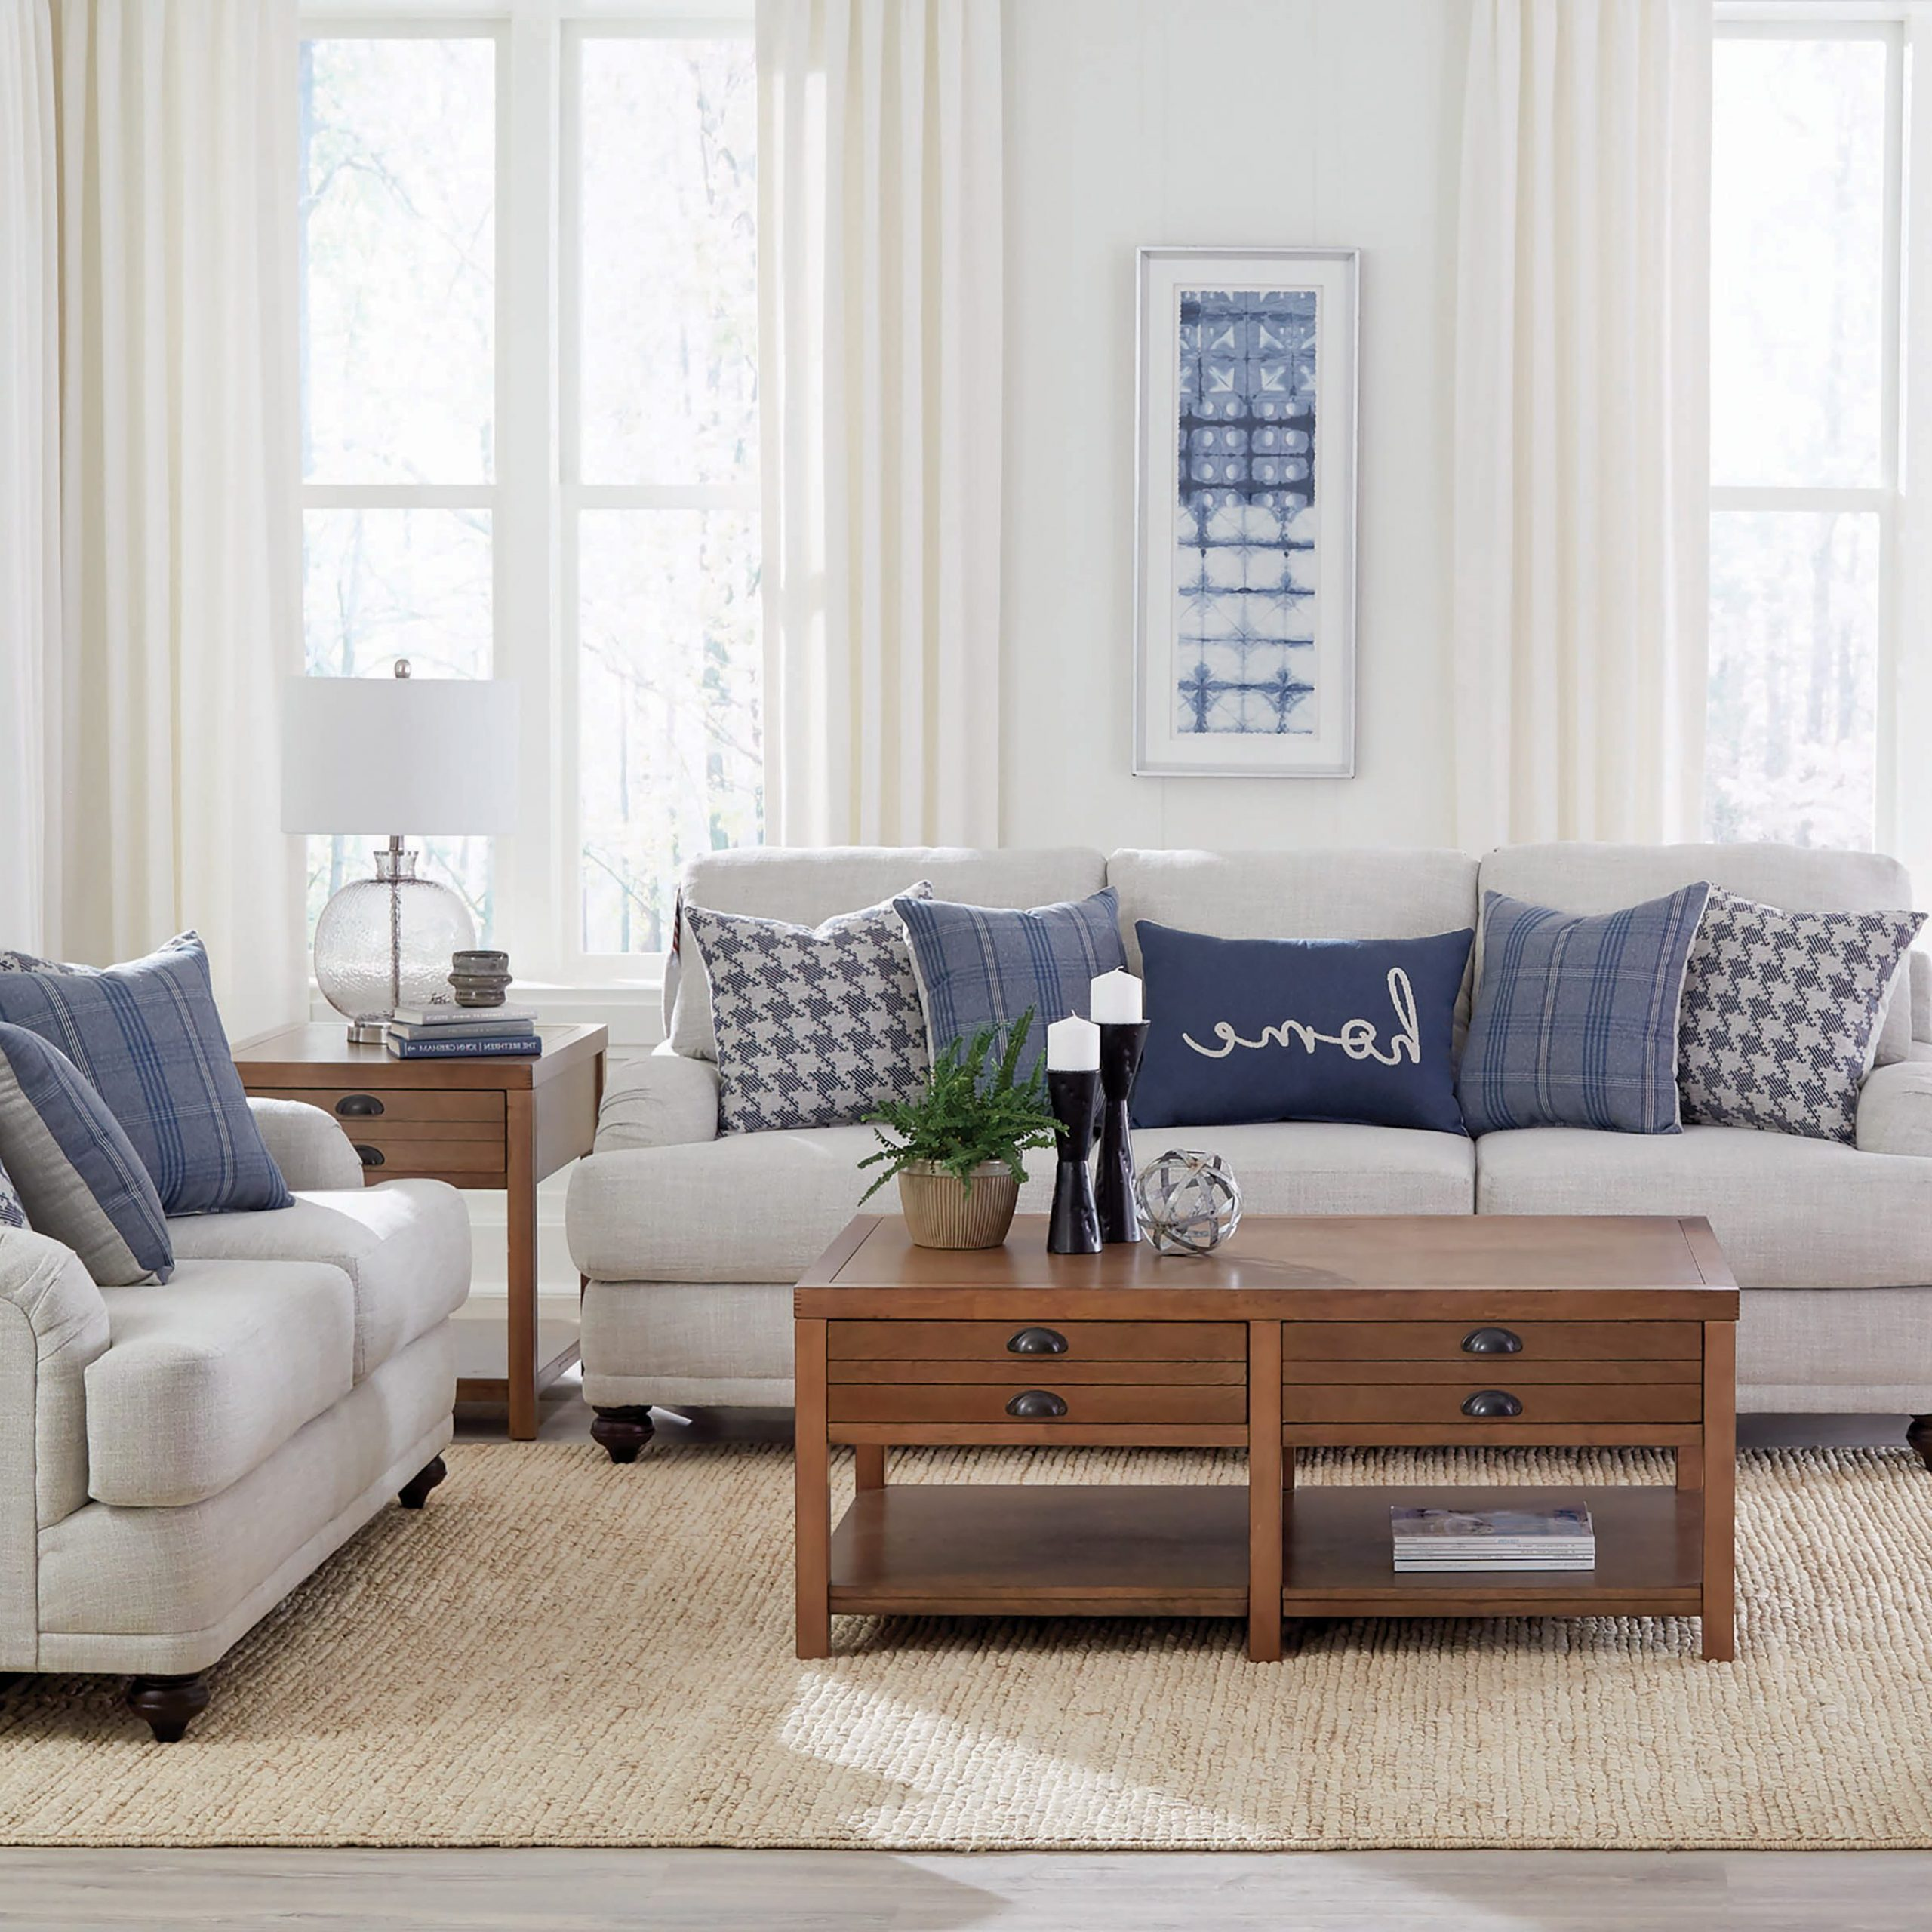 Gwen Recessed Arms Sofa Light Grey – Coaster Fine Furniture Regarding Latest Molnar Upholstered Sectional Sofas Blue/gray (View 2 of 20)